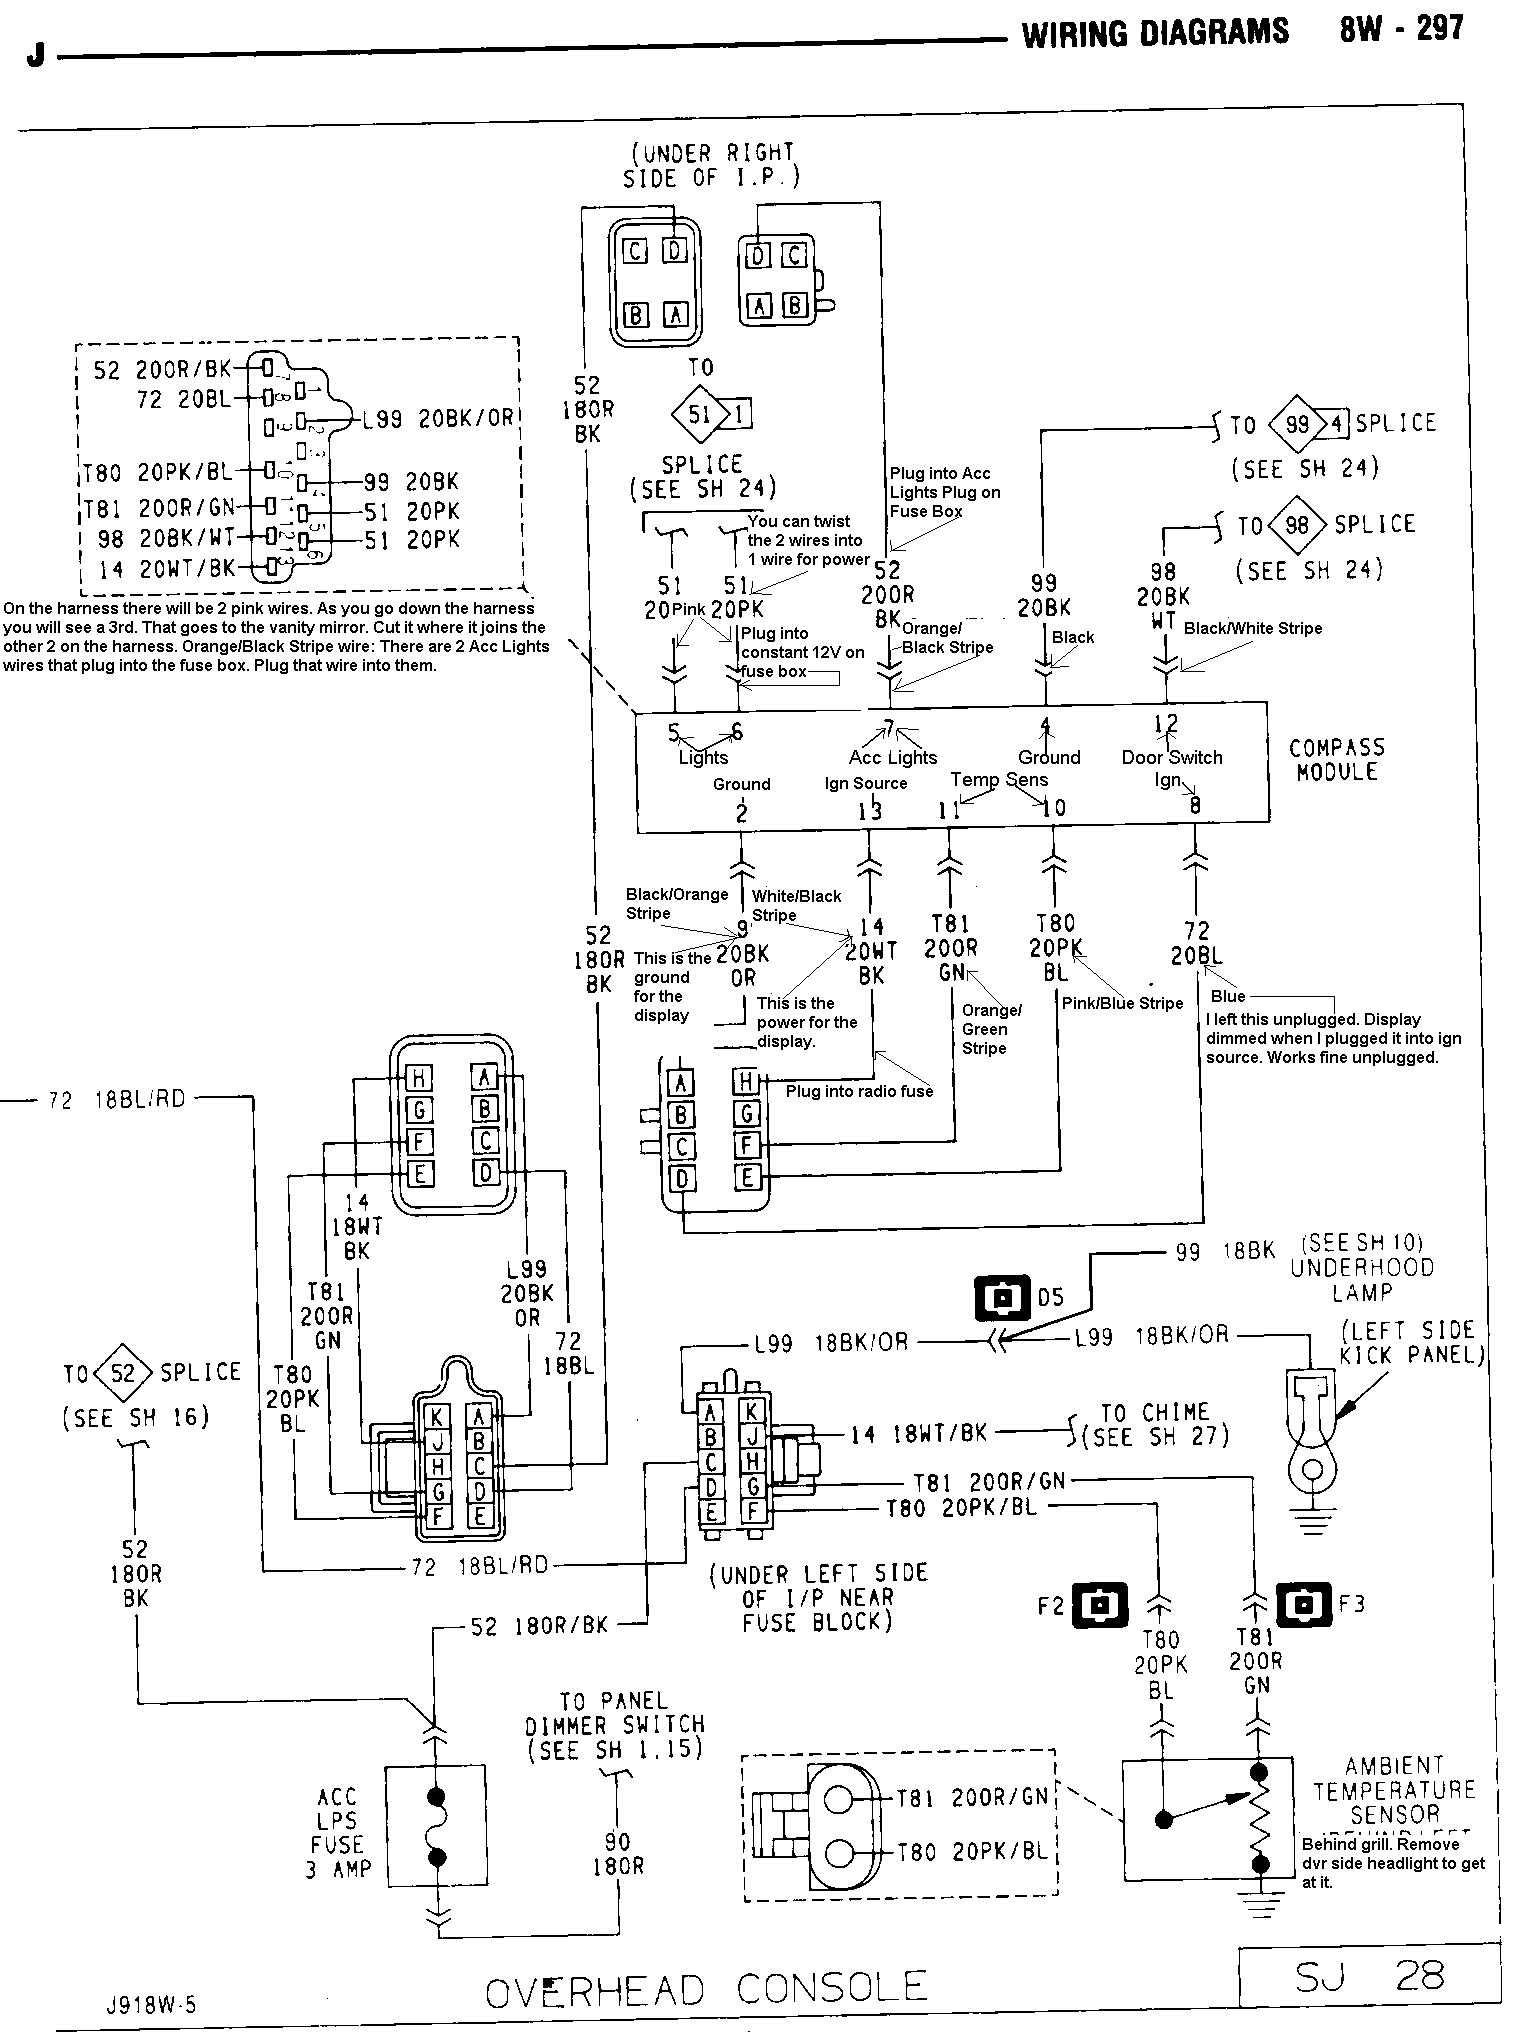 91consolediagrammodified tom 'oljeep' collins fsj wiring page 2000 XJ Fronte at gsmportal.co